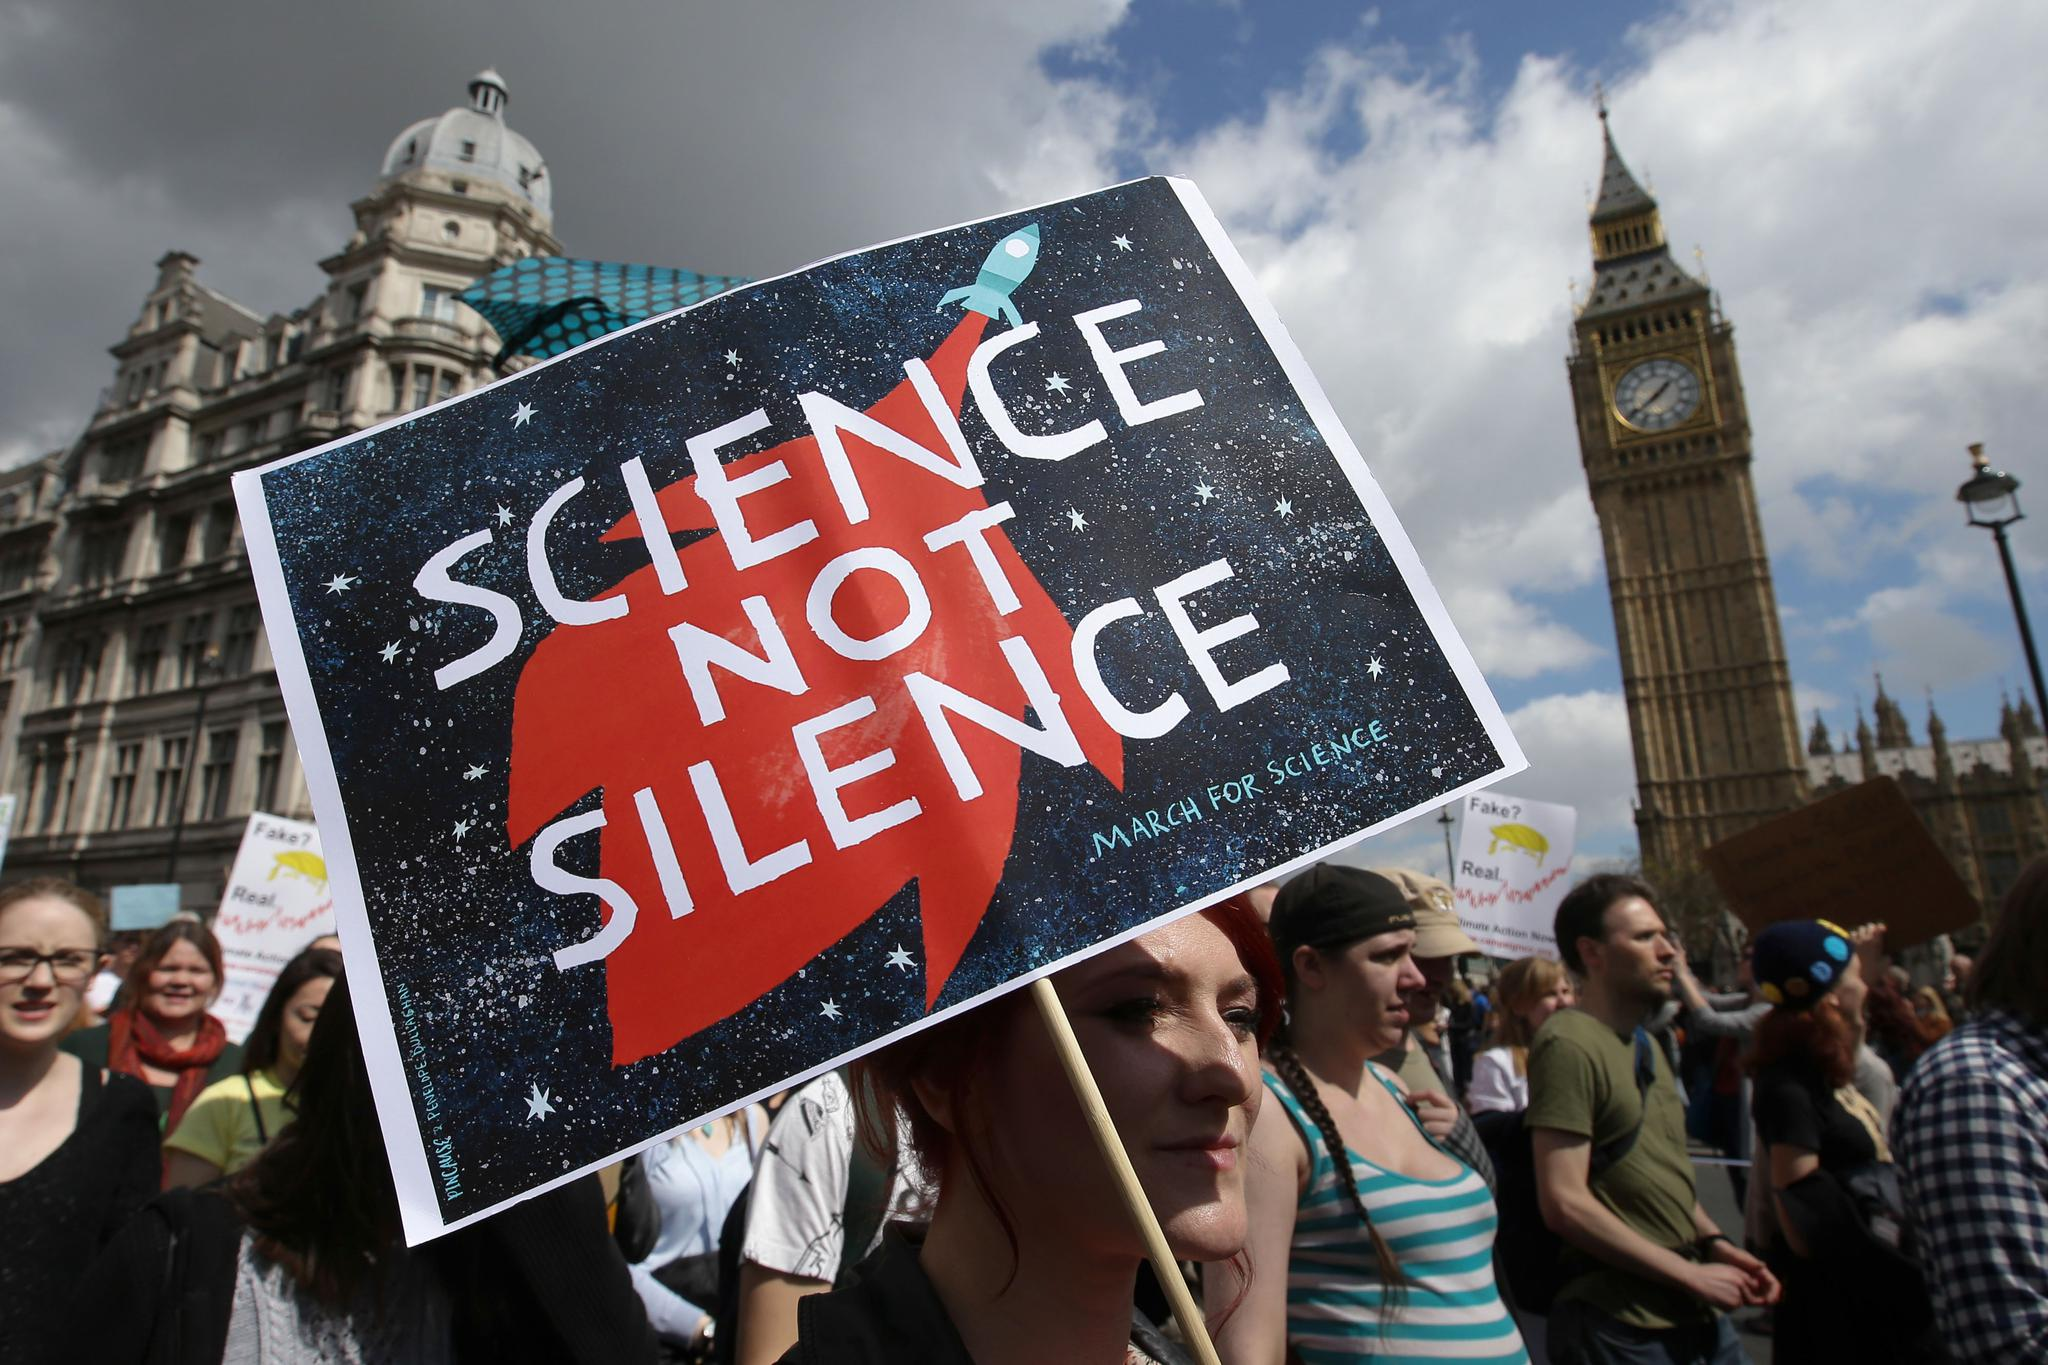 Scientists and science enthusiasts participate in the March for Science in London on April 22, 2017. Since last year's event, dozens of scientists have filed to run in federal, state and local elections in the United States.